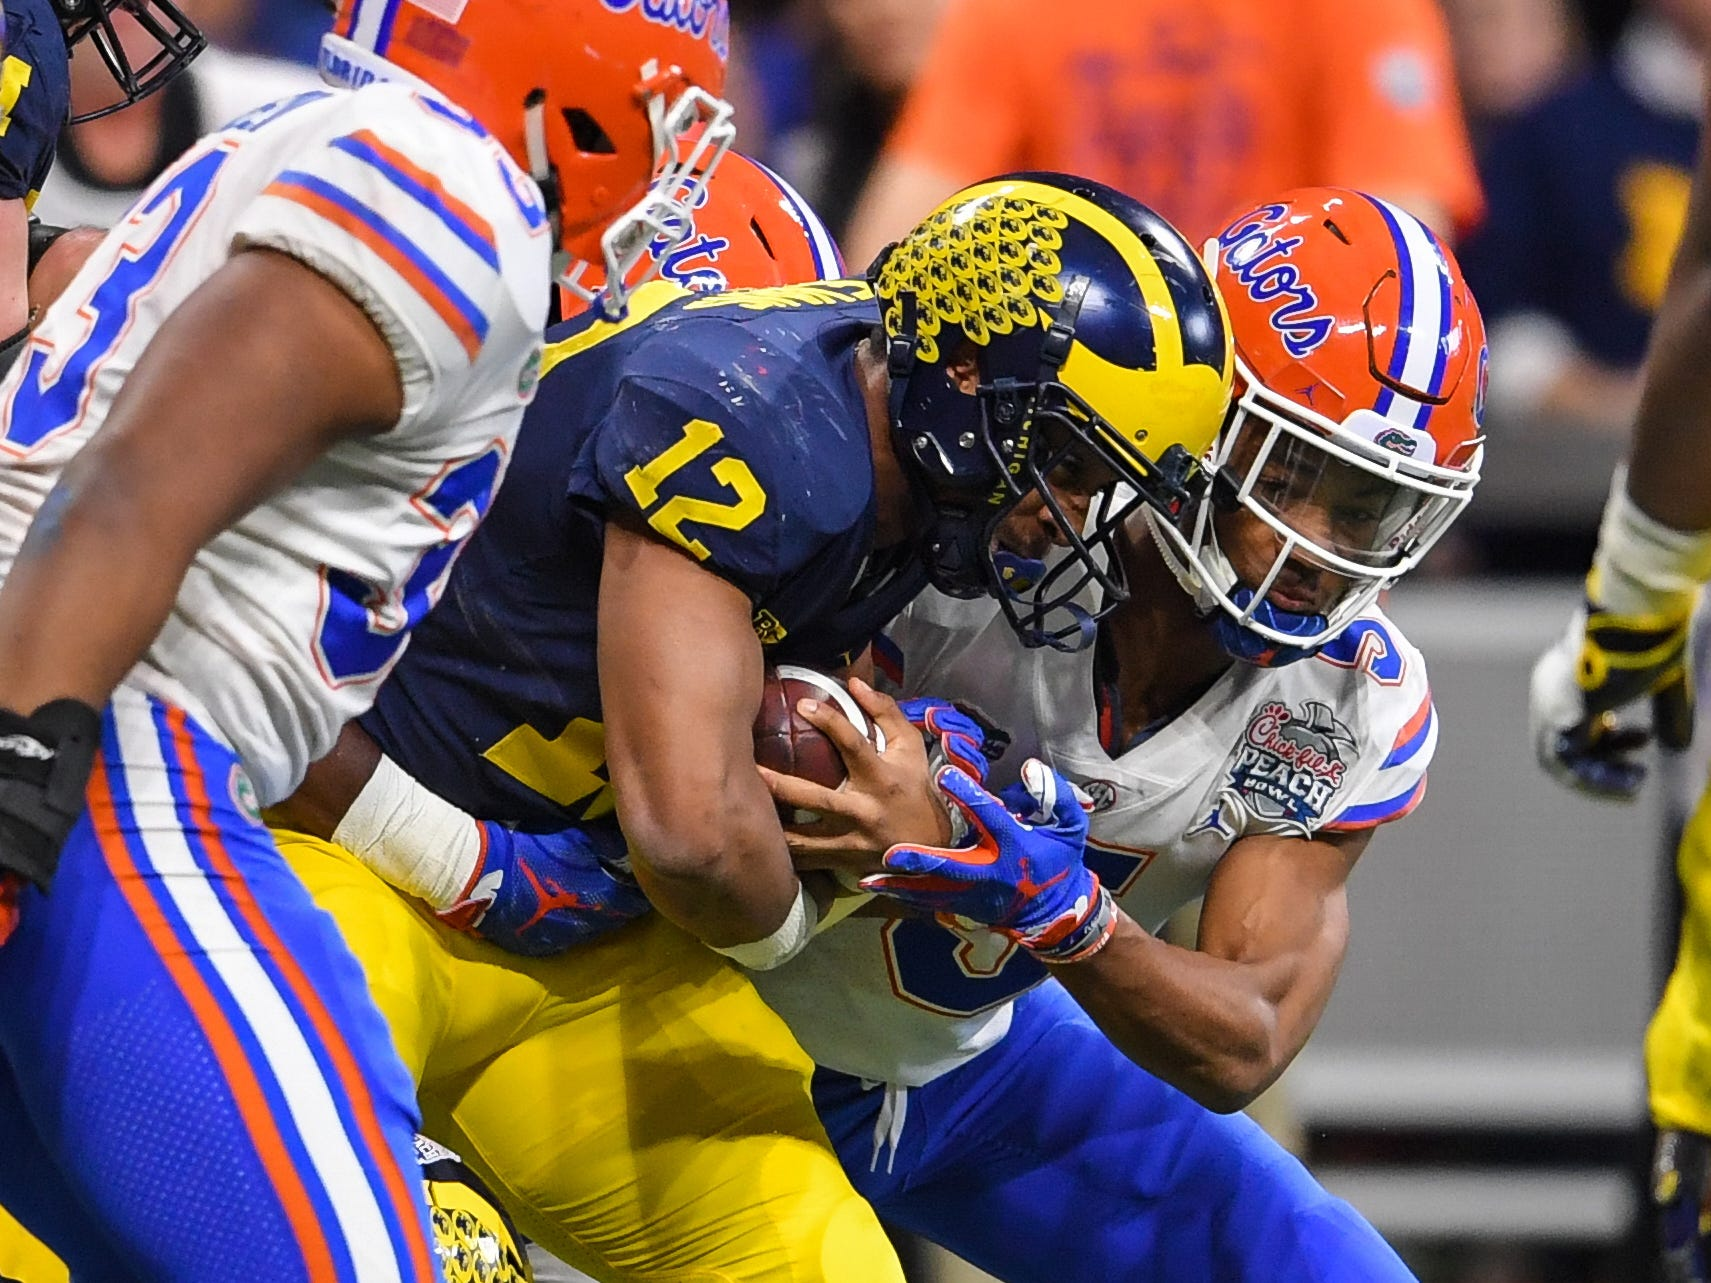 Florida defensive back CJ Henderson tackles Michigan running back Chris Evans in the first quarter of the Peach Bowl on Saturday, Dec. 29, 2018, in Atlanta.